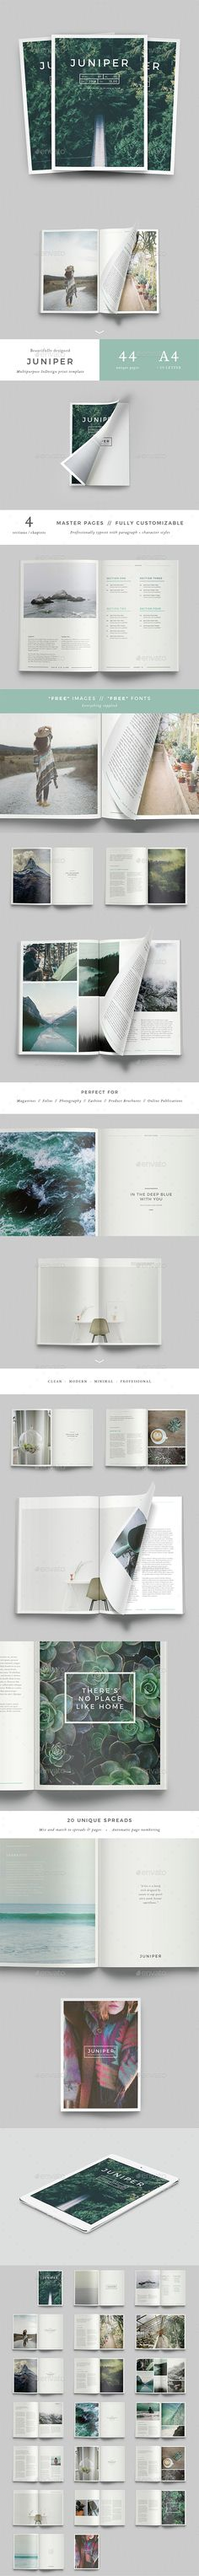 Juniper Magazine / Portfolio Template InDesign INDD. Download here: http://graphicriver.net/item/juniper-magazine-portfolio/14880769?ref=ksioks                                                                                                                                                     More